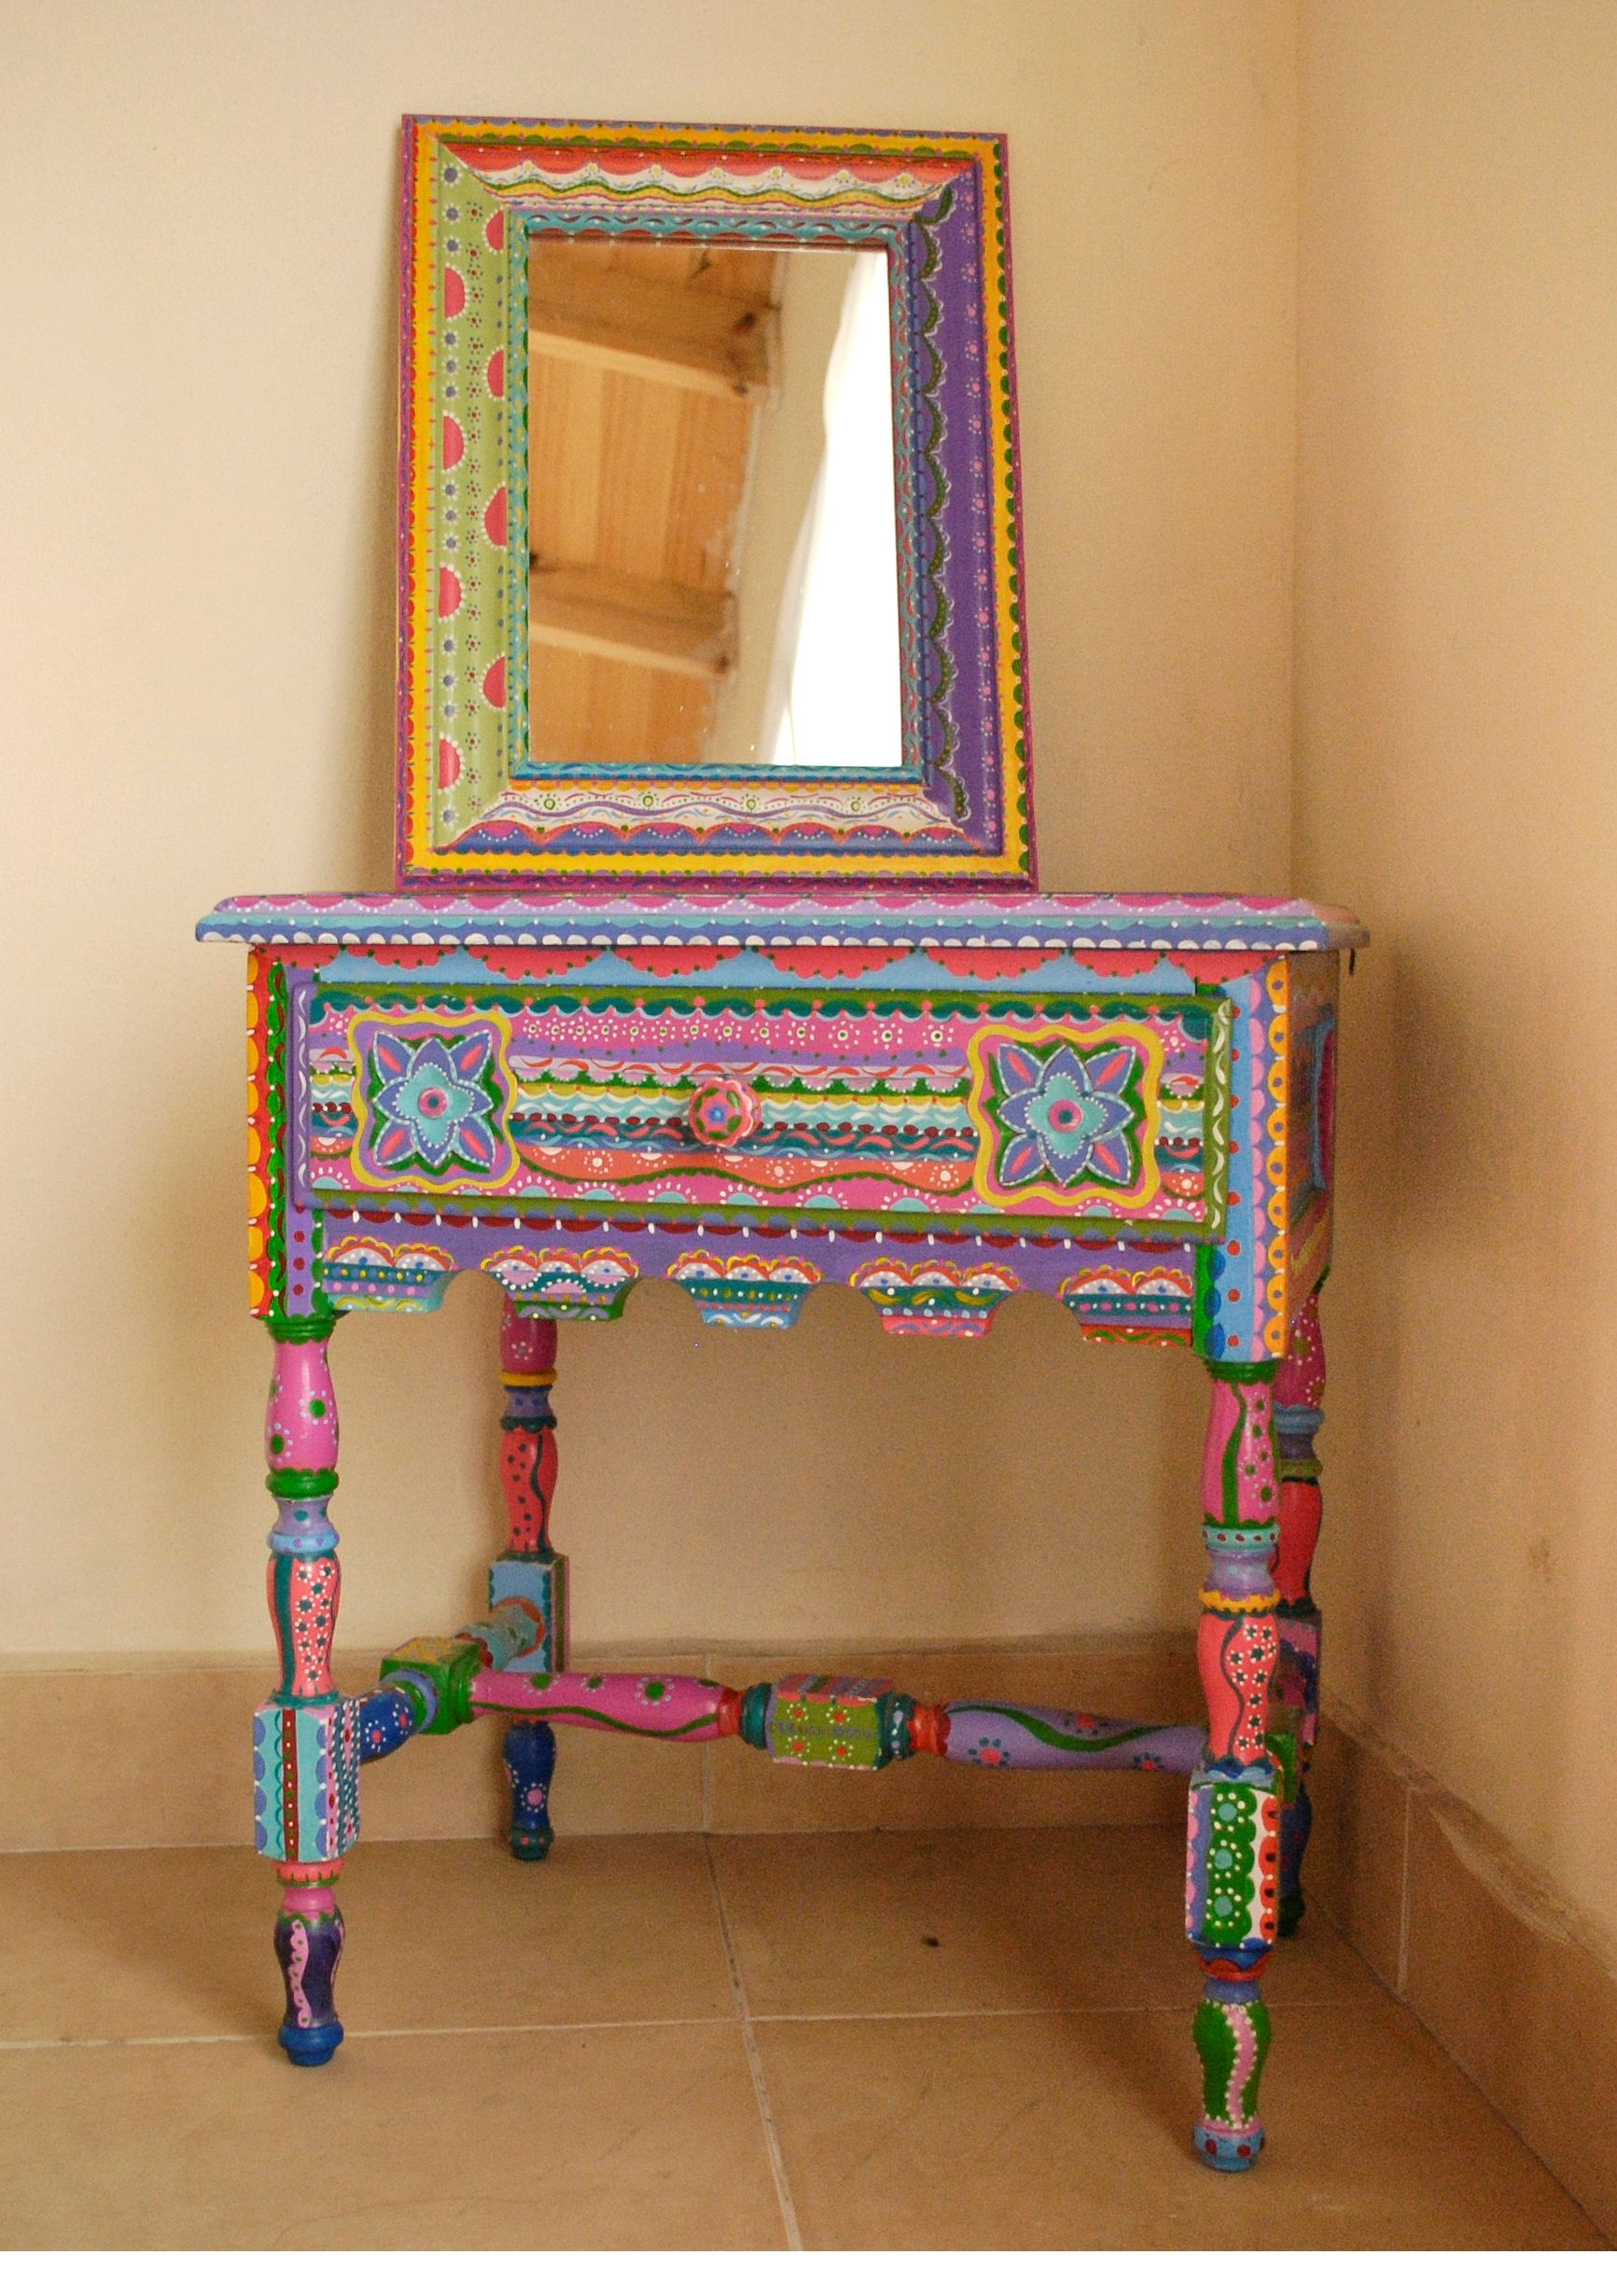 Antique table intervened by artist mesa mexican style for Mexican furniture